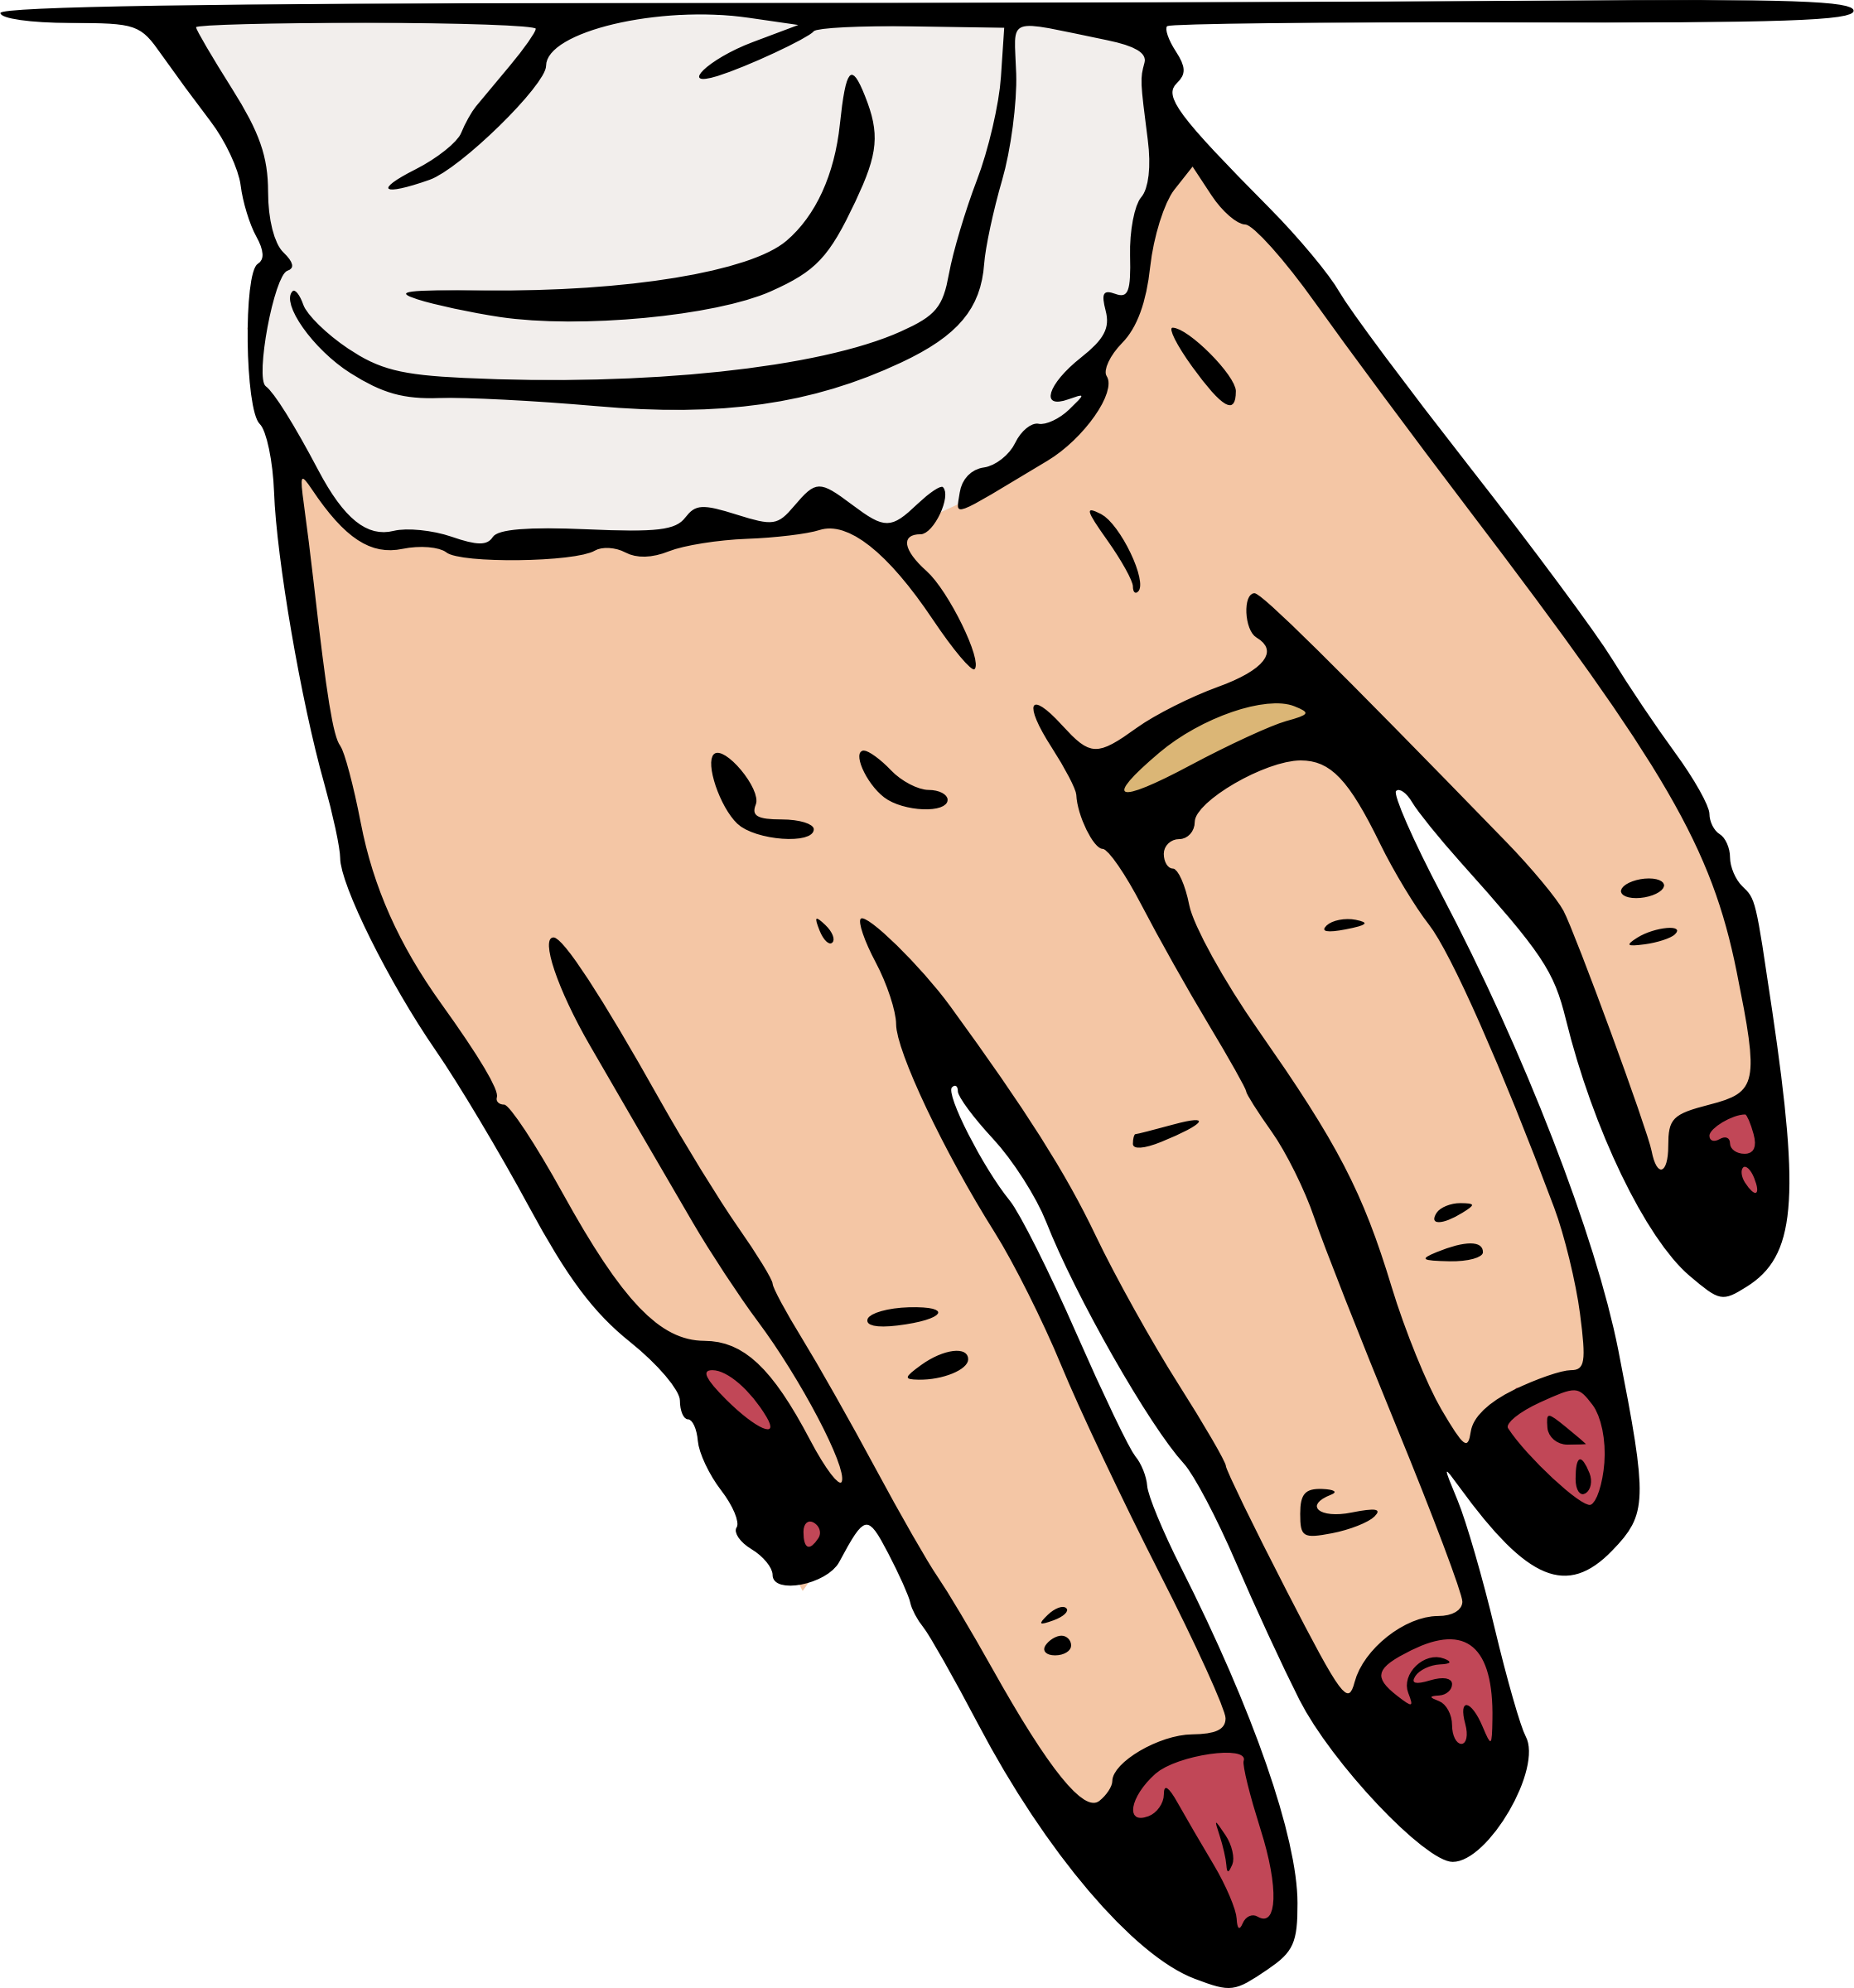 Fingers clipart nice hand, Fingers nice hand Transparent.